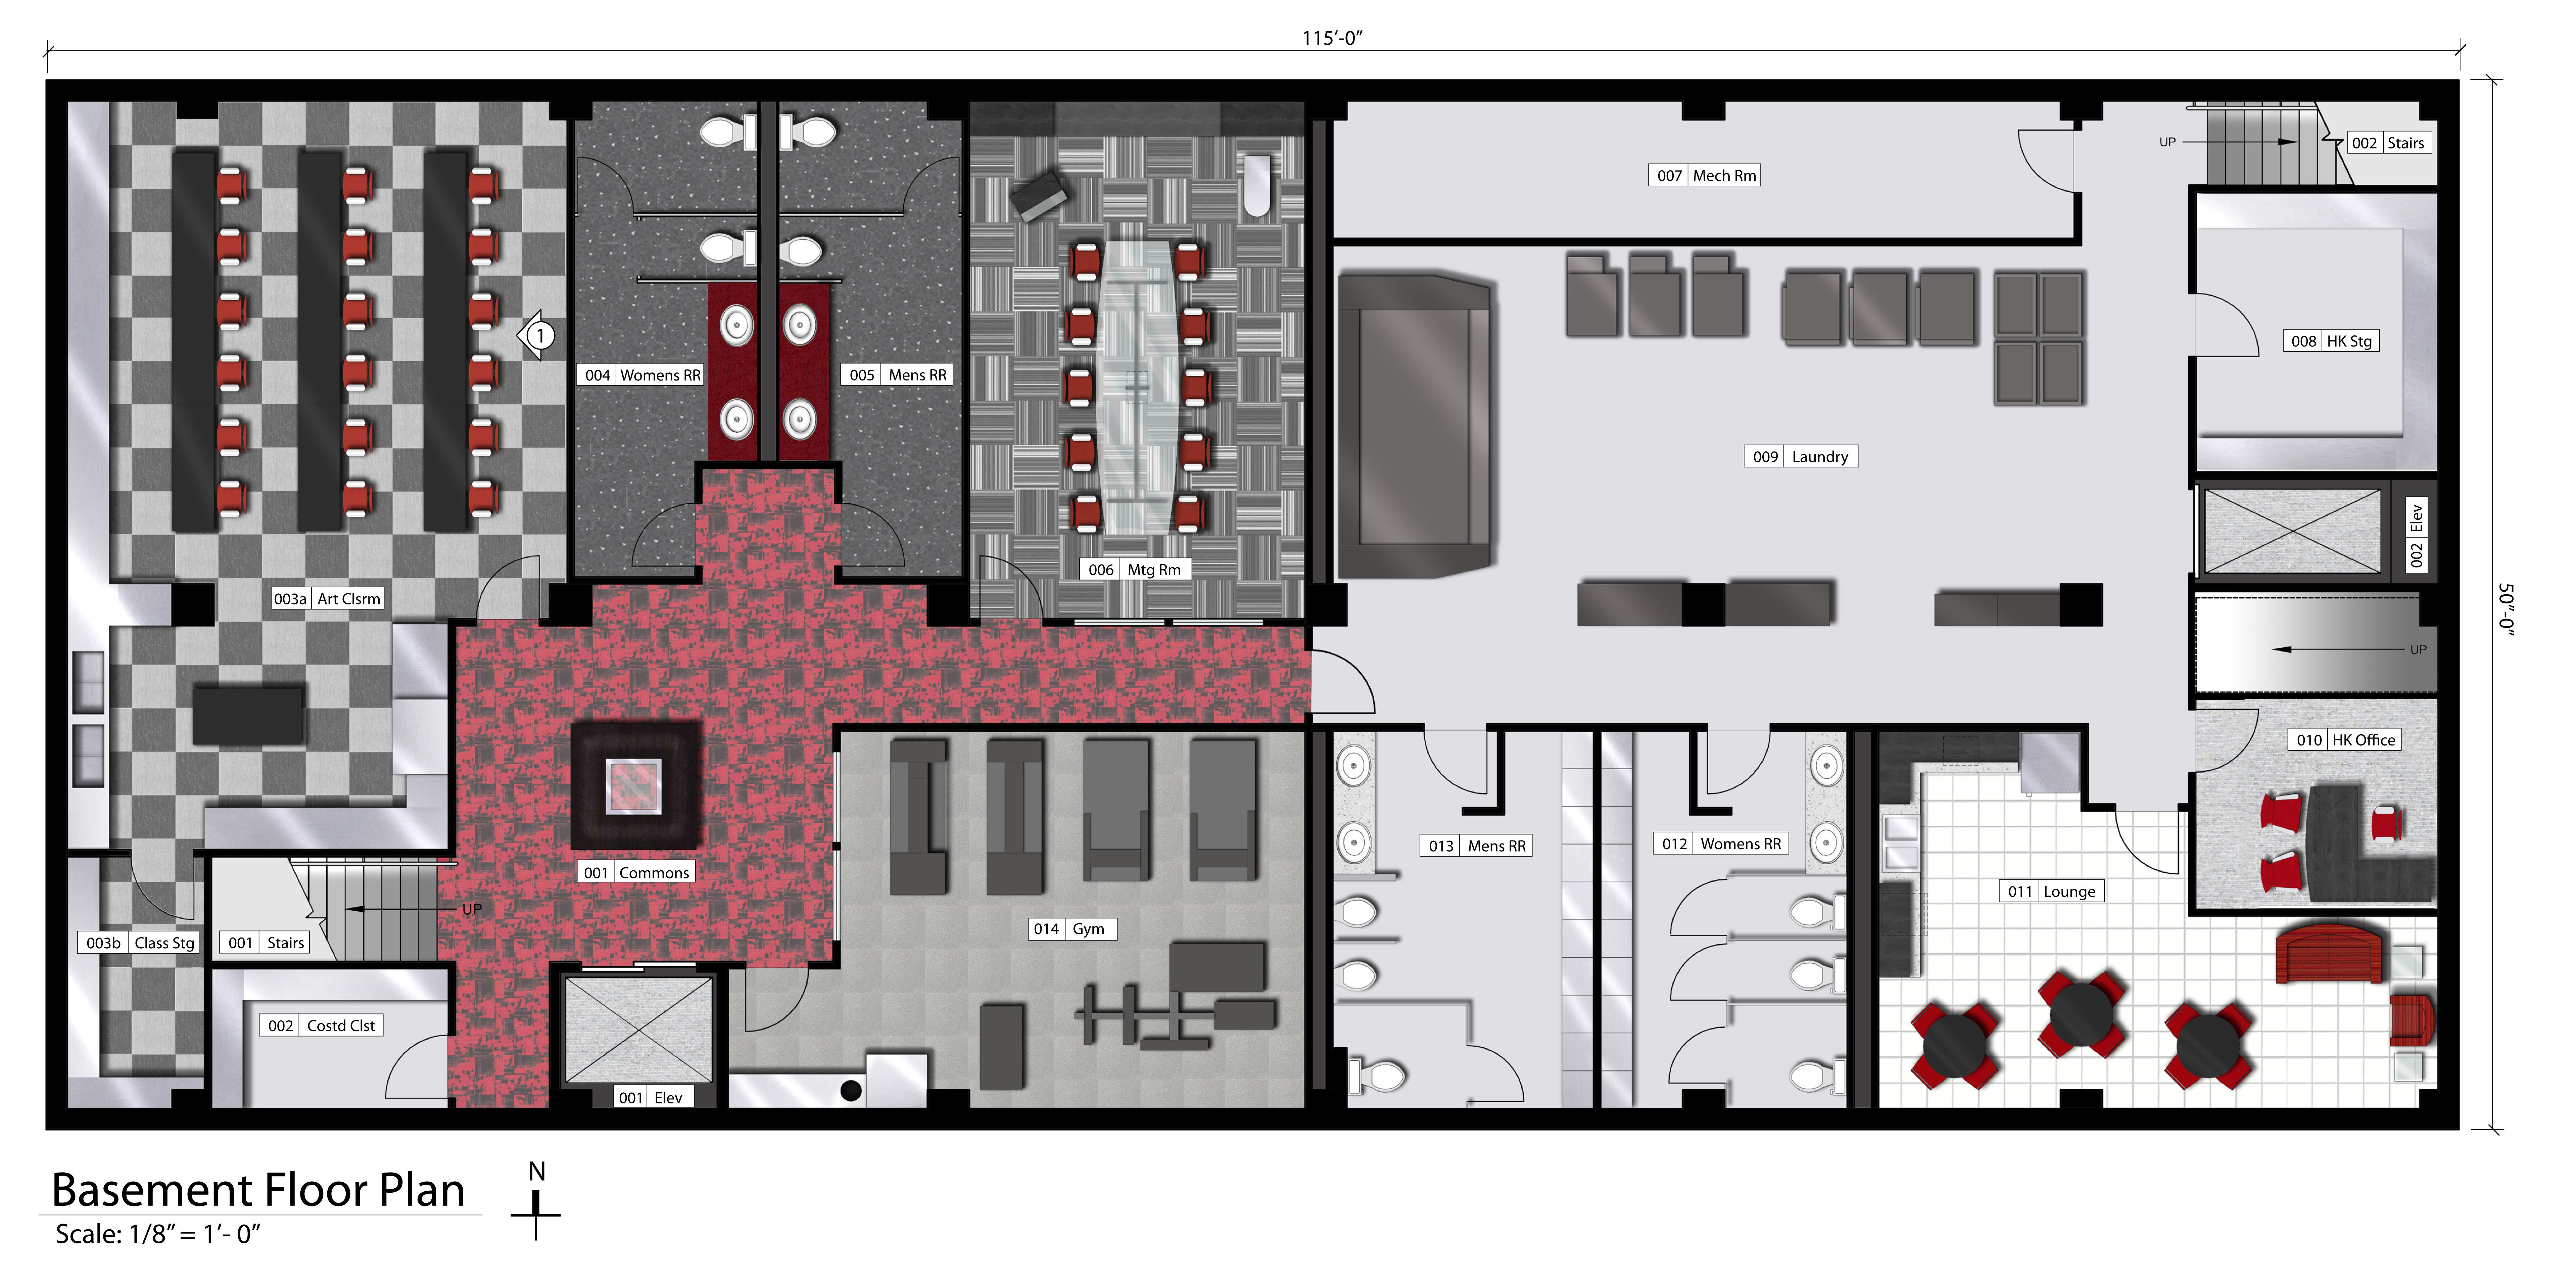 Hotel Basement Floor Plan Google Search With Images Basement